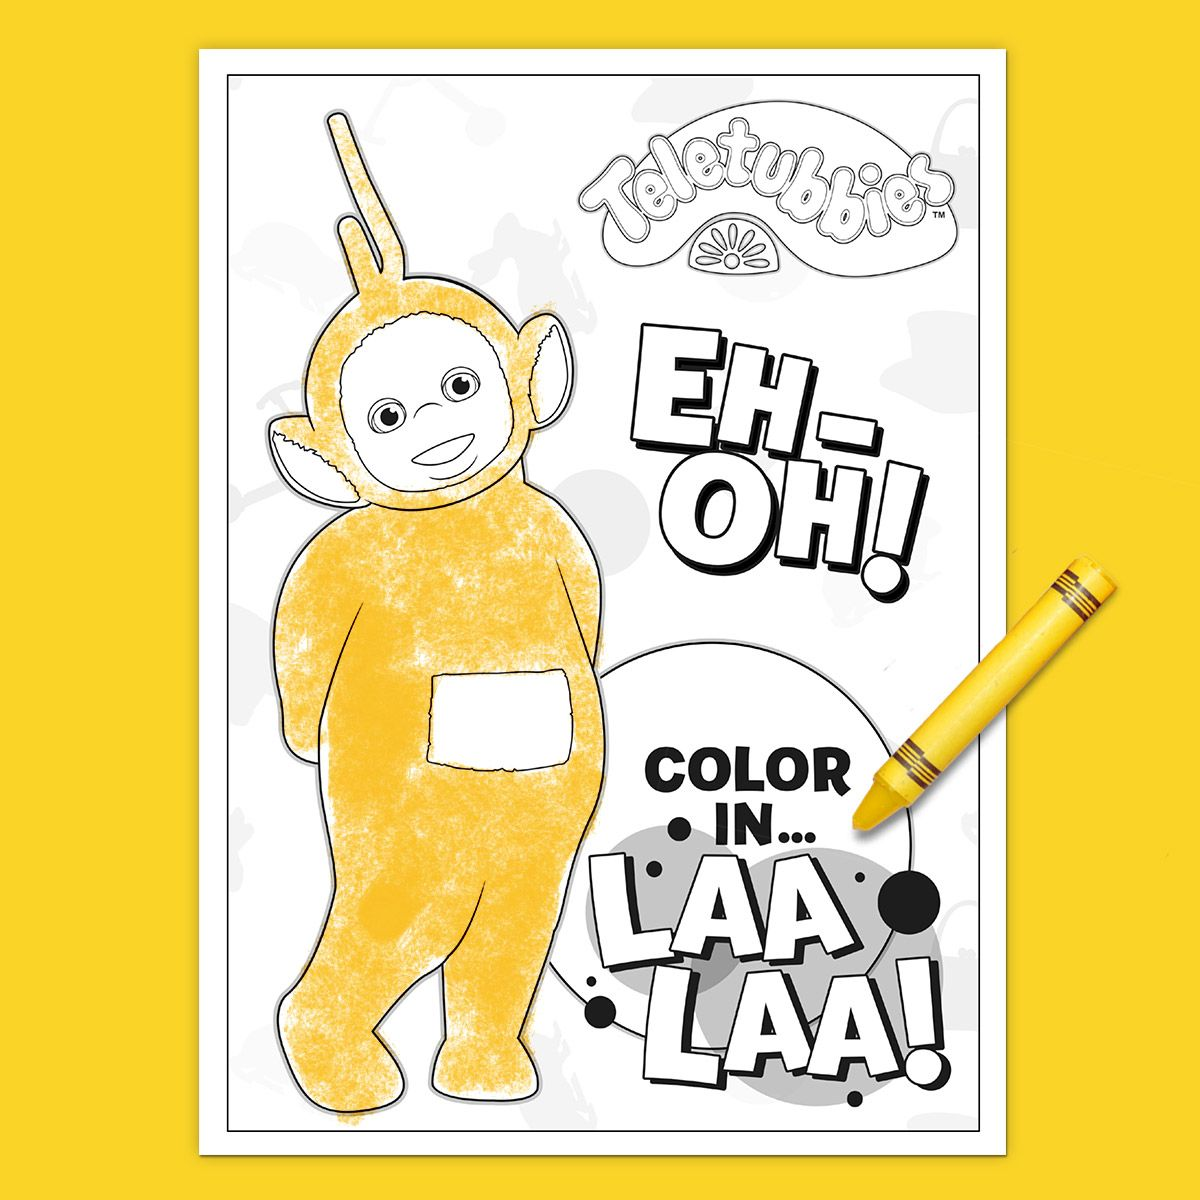 Teletubbies Coloring Page: Laa Laa